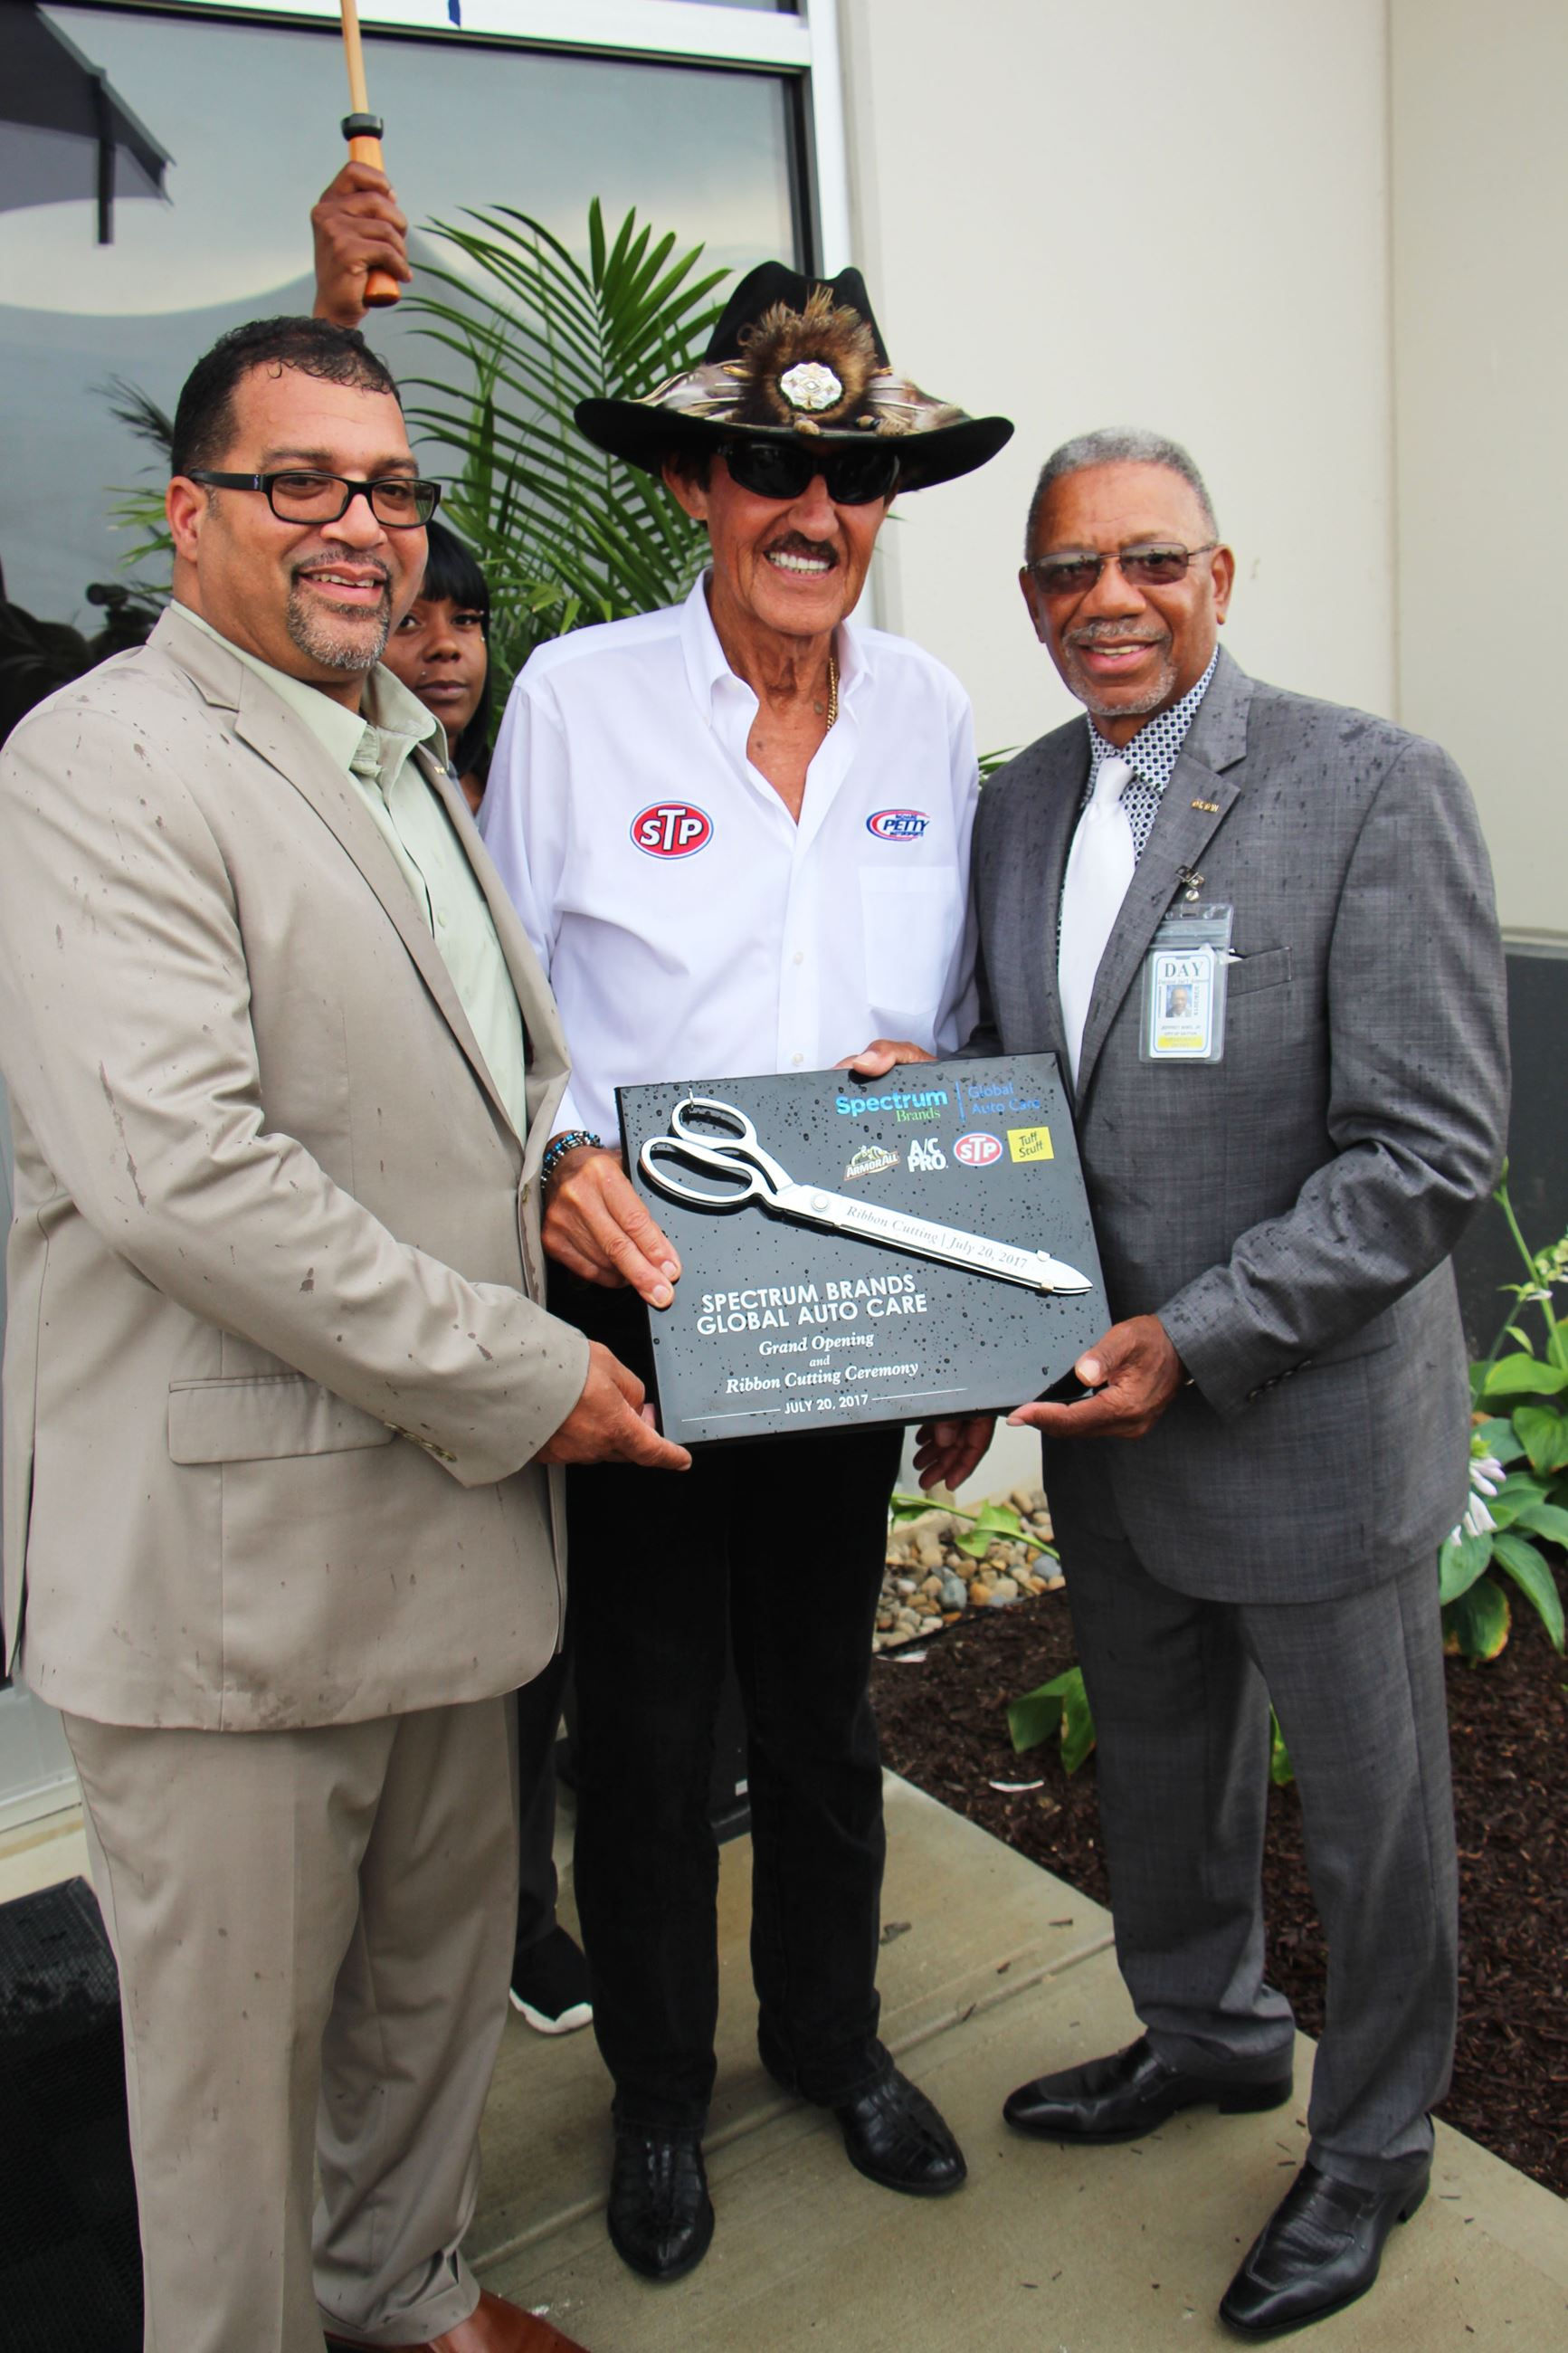 Richard Petty Opens Spectrum Brands Center